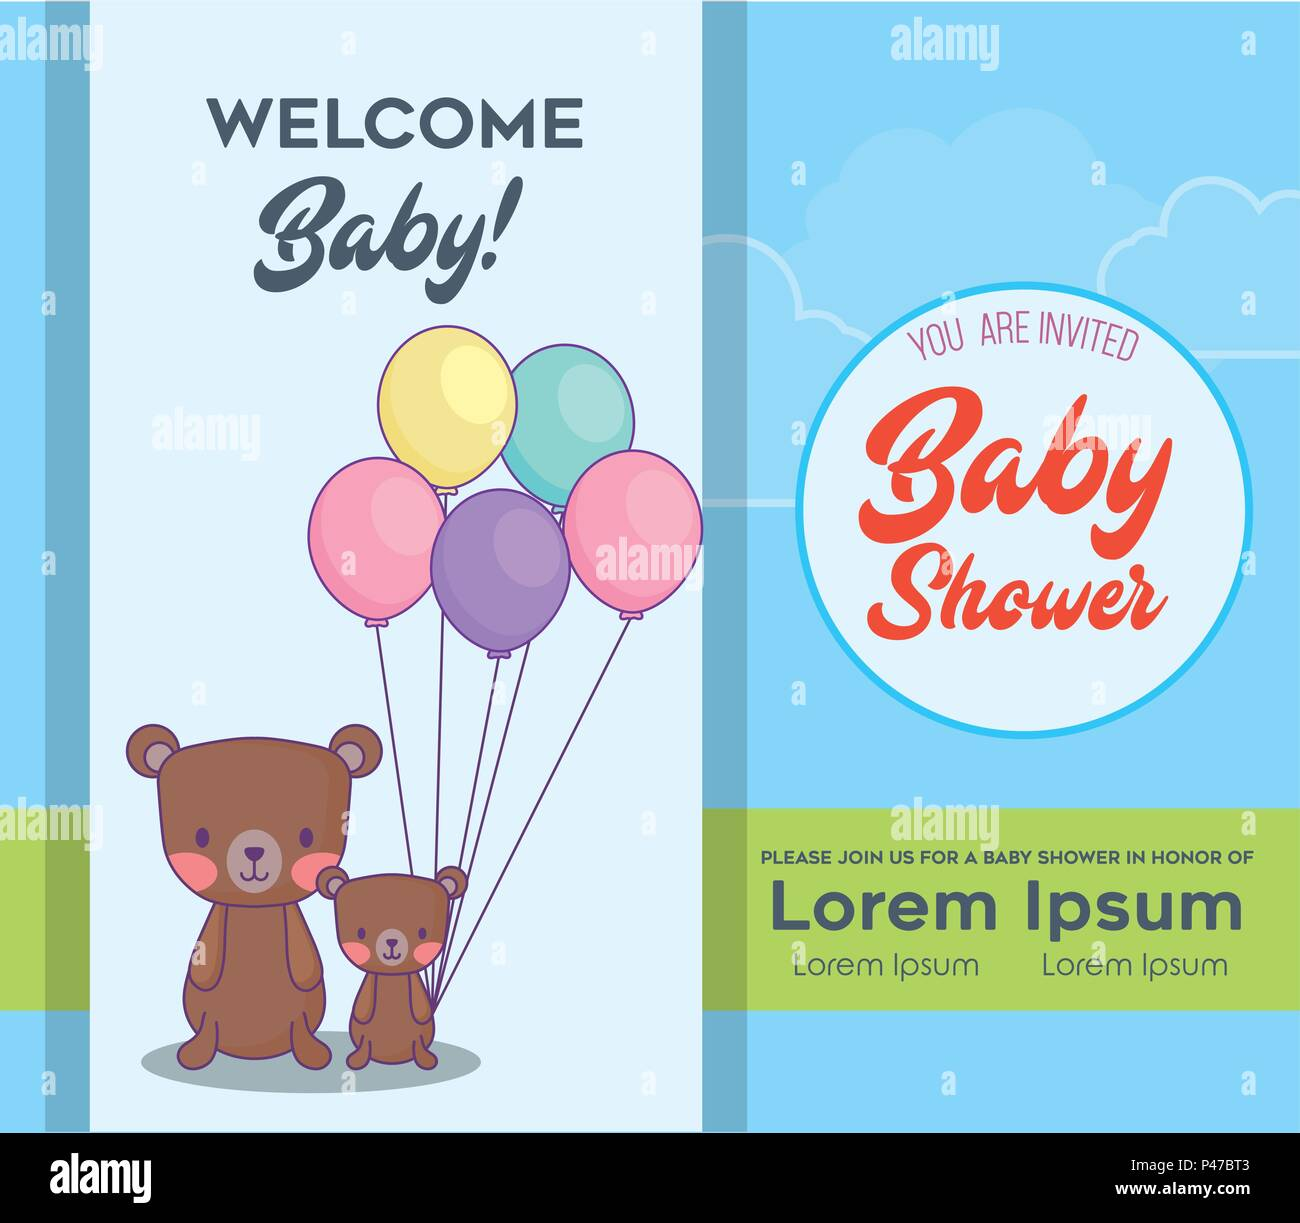 Baby Shower Invitation Card With Cute Bears With Balloons Over Blue